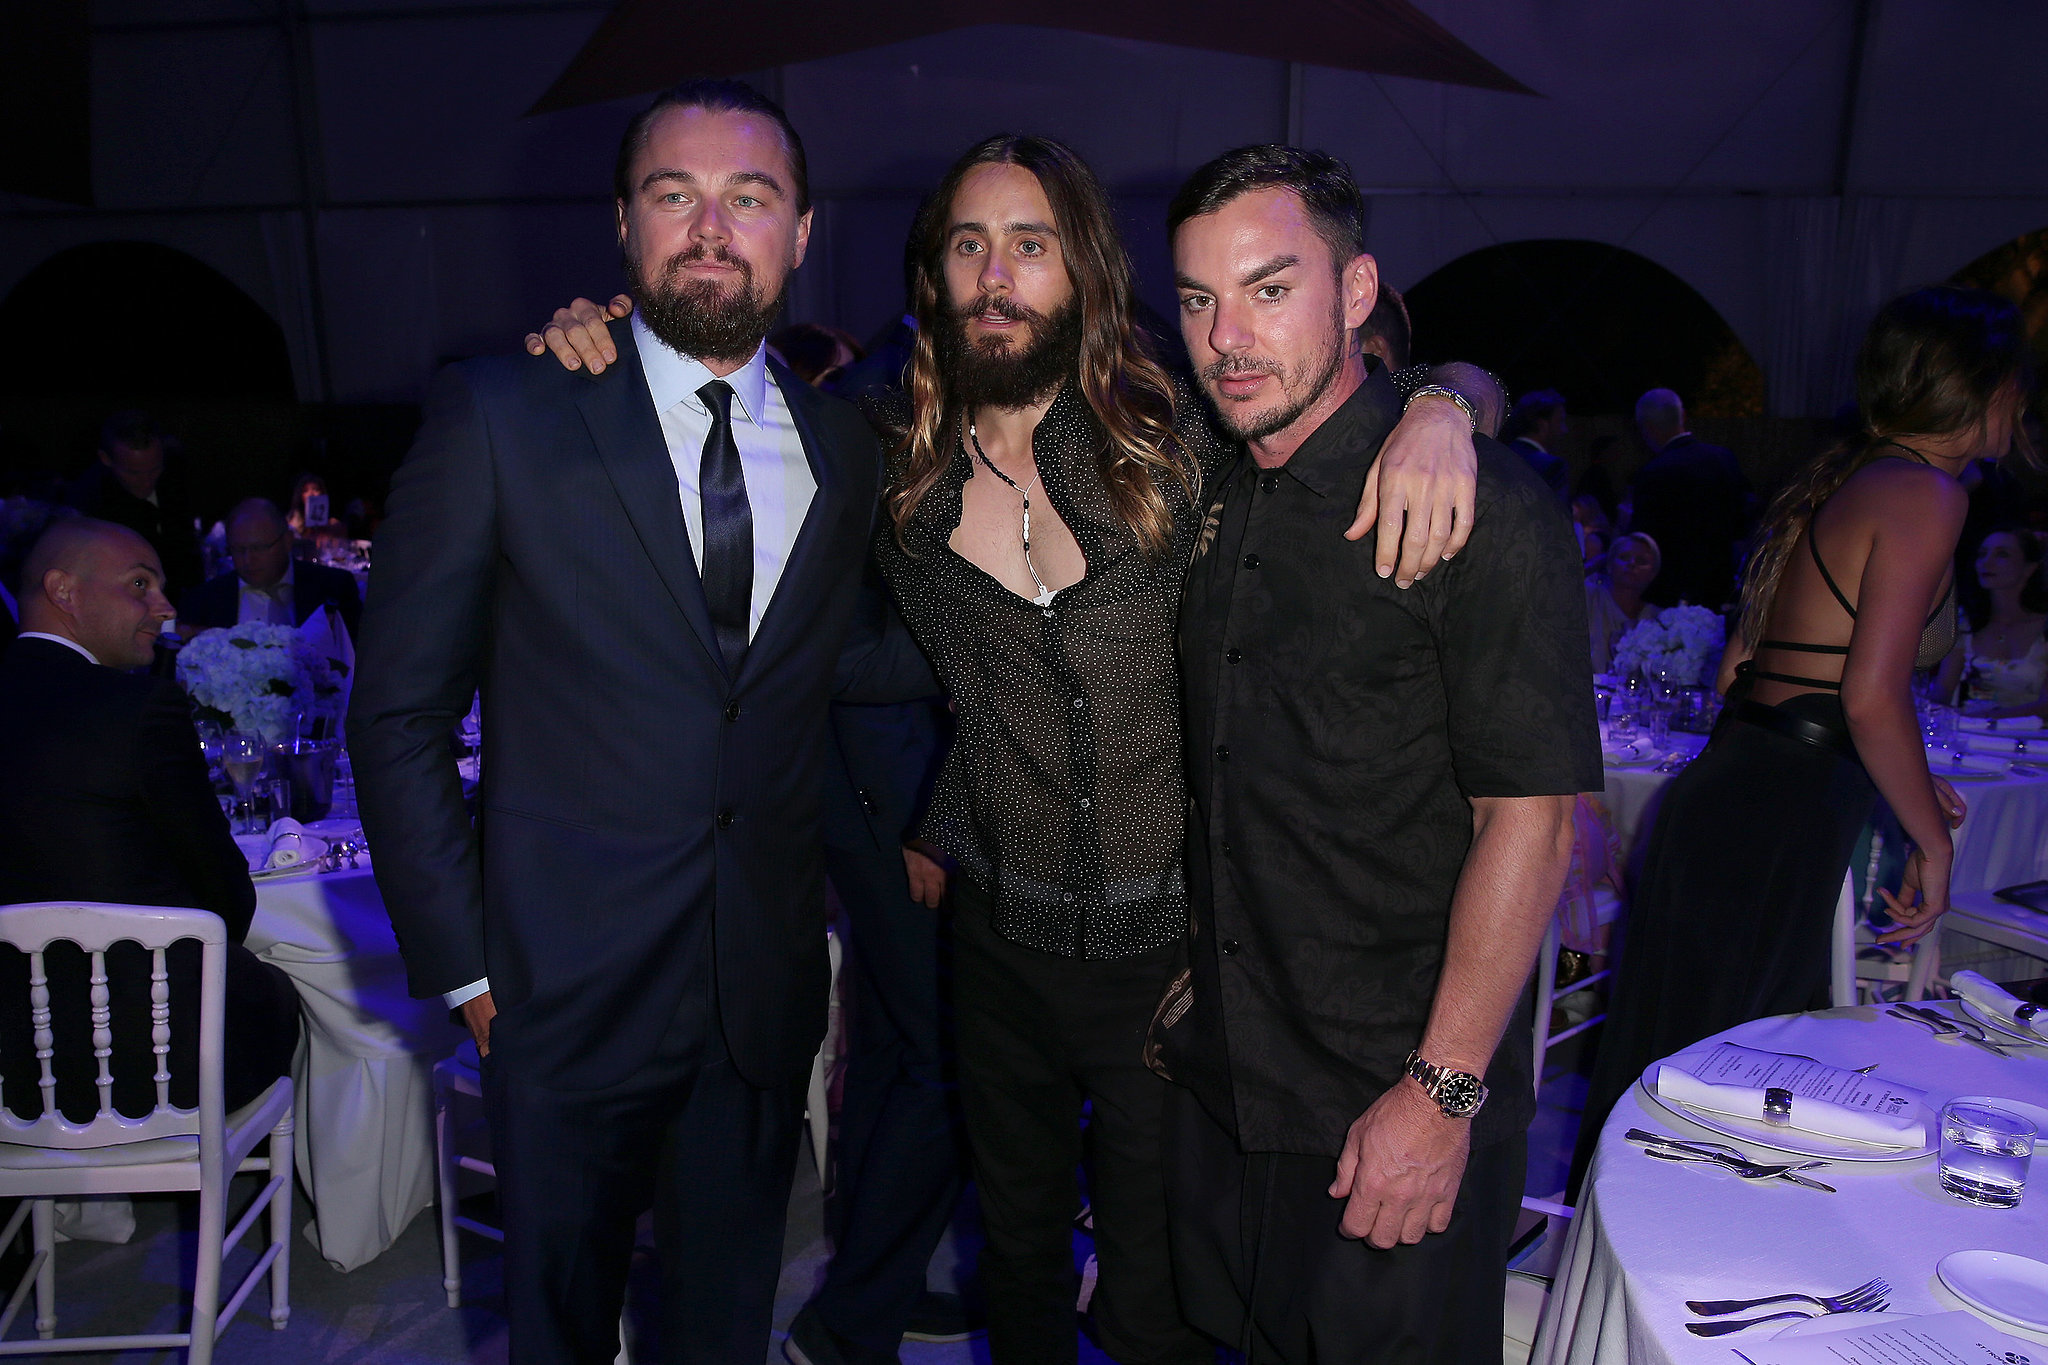 Hanging Out With Jared Leto?